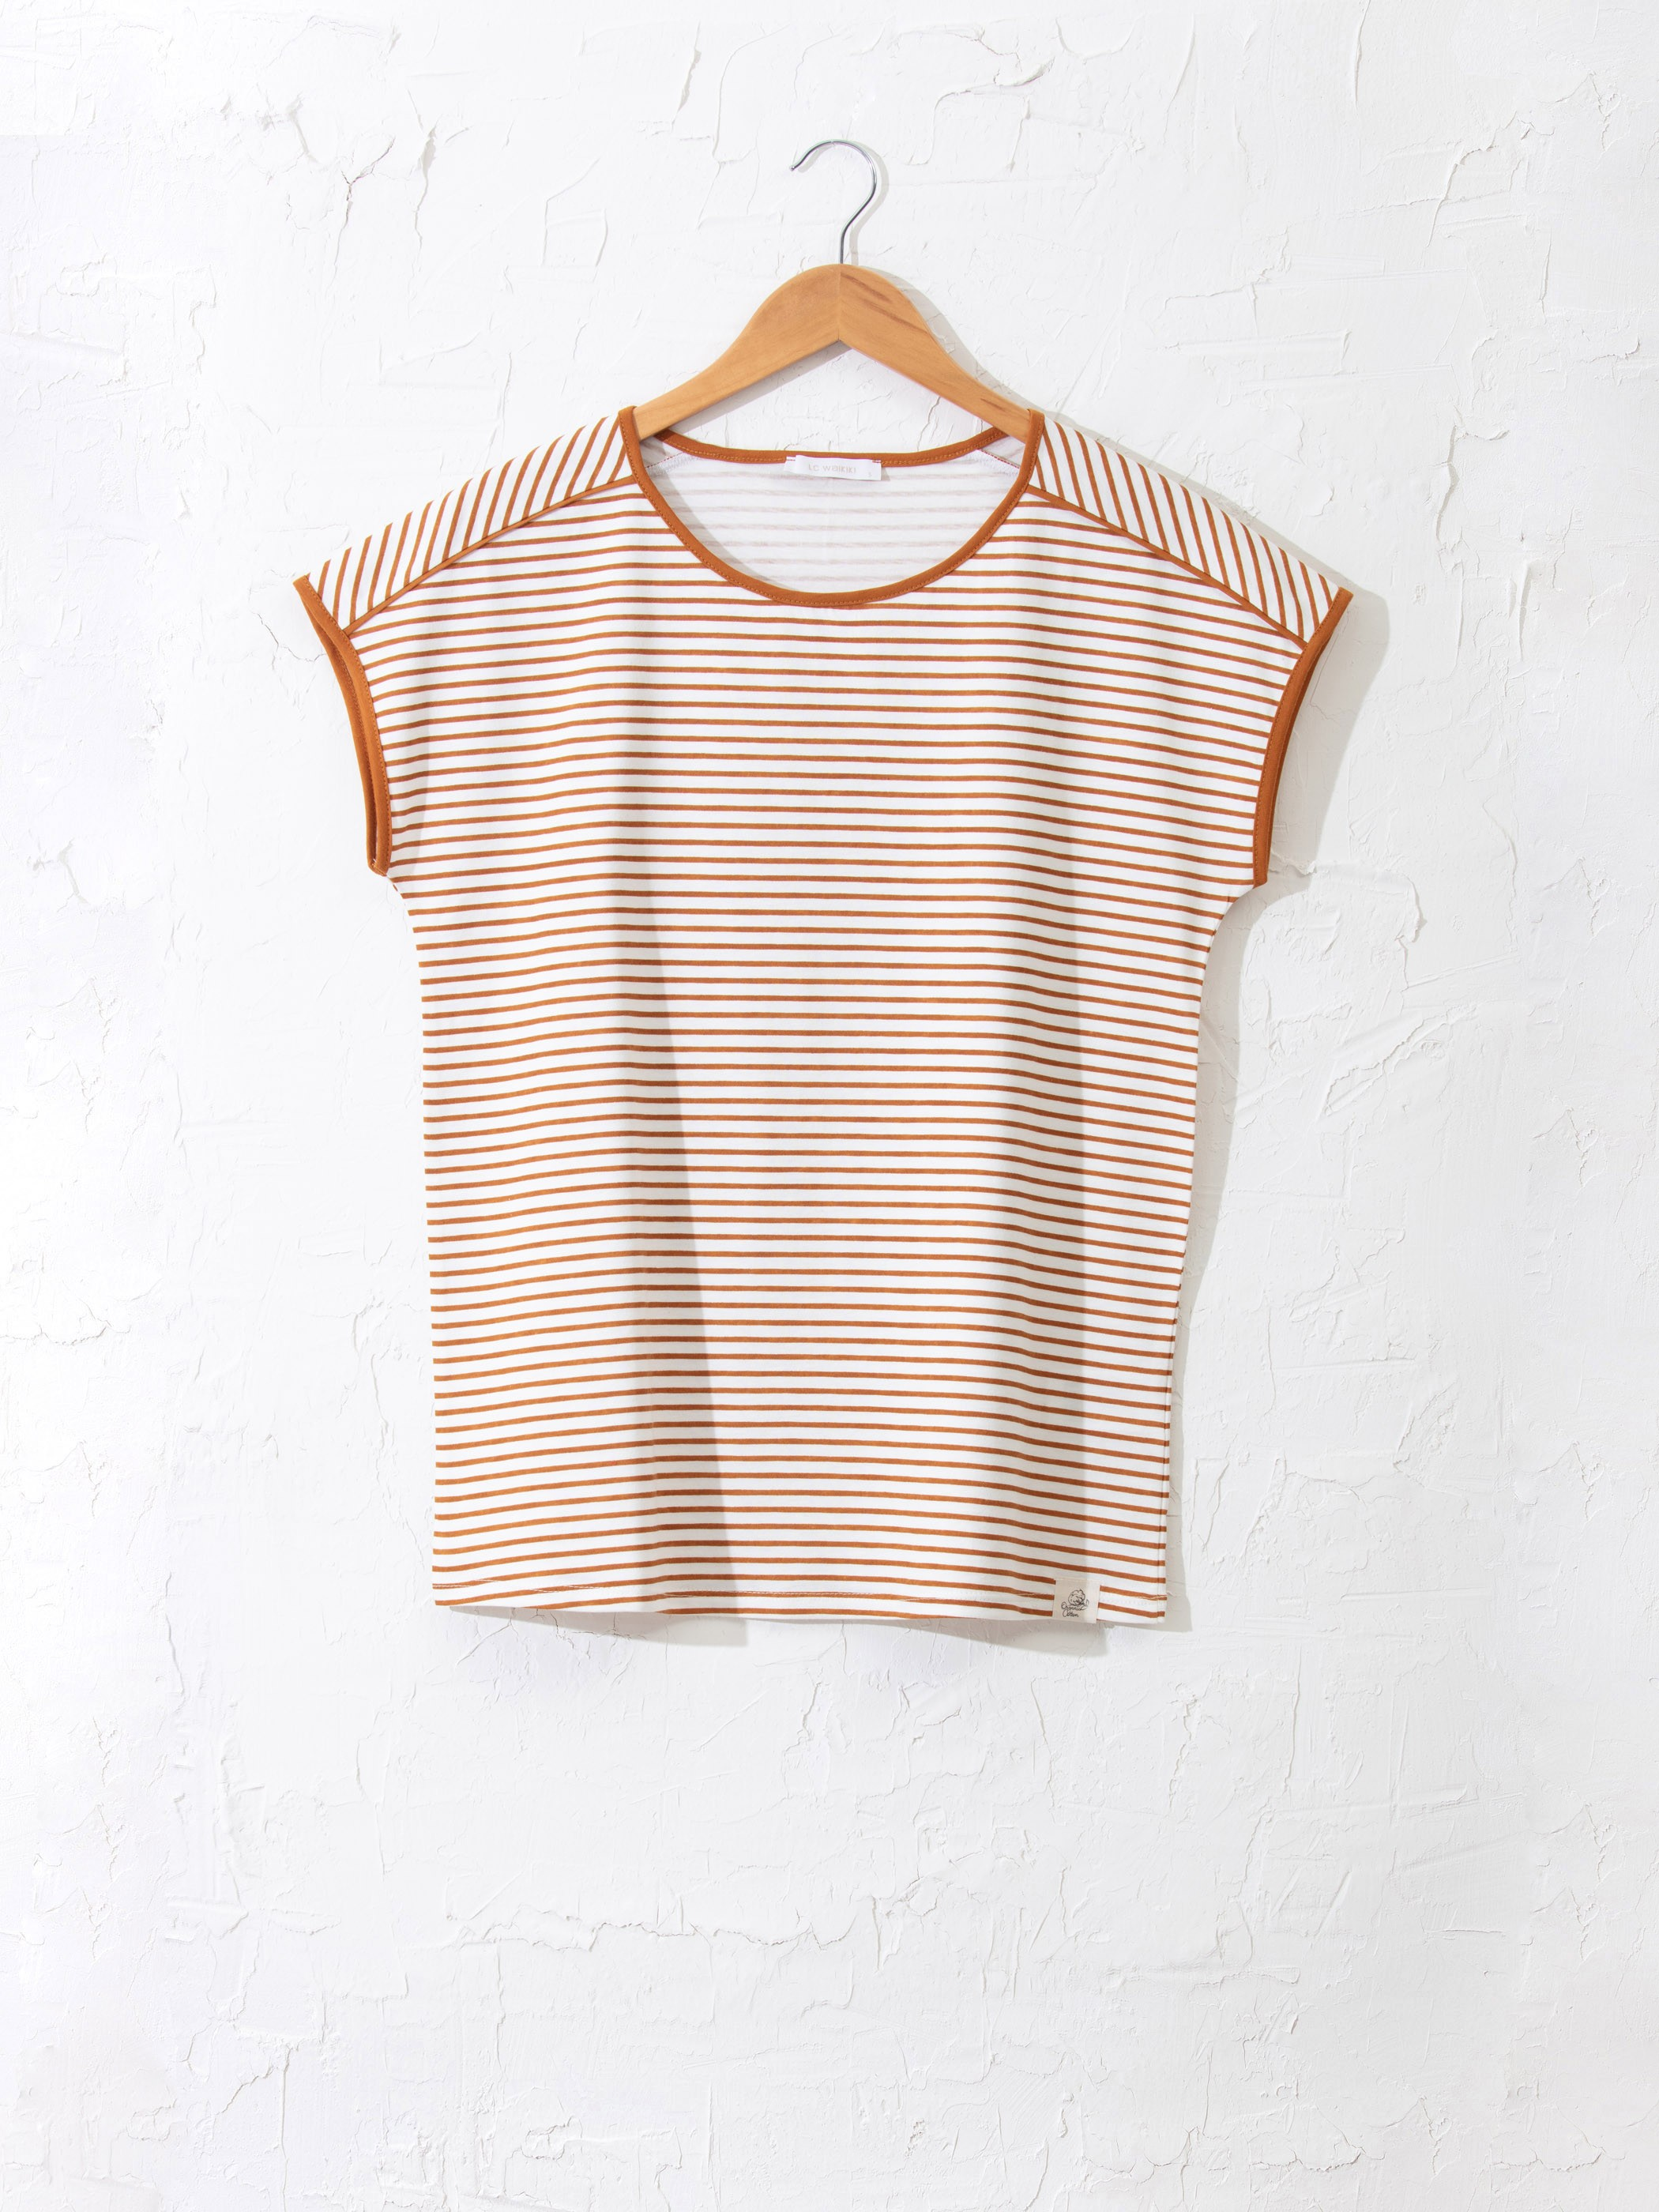 YELLOW - Striped Organic Cotton T-Shirt - 0SQ255Z8